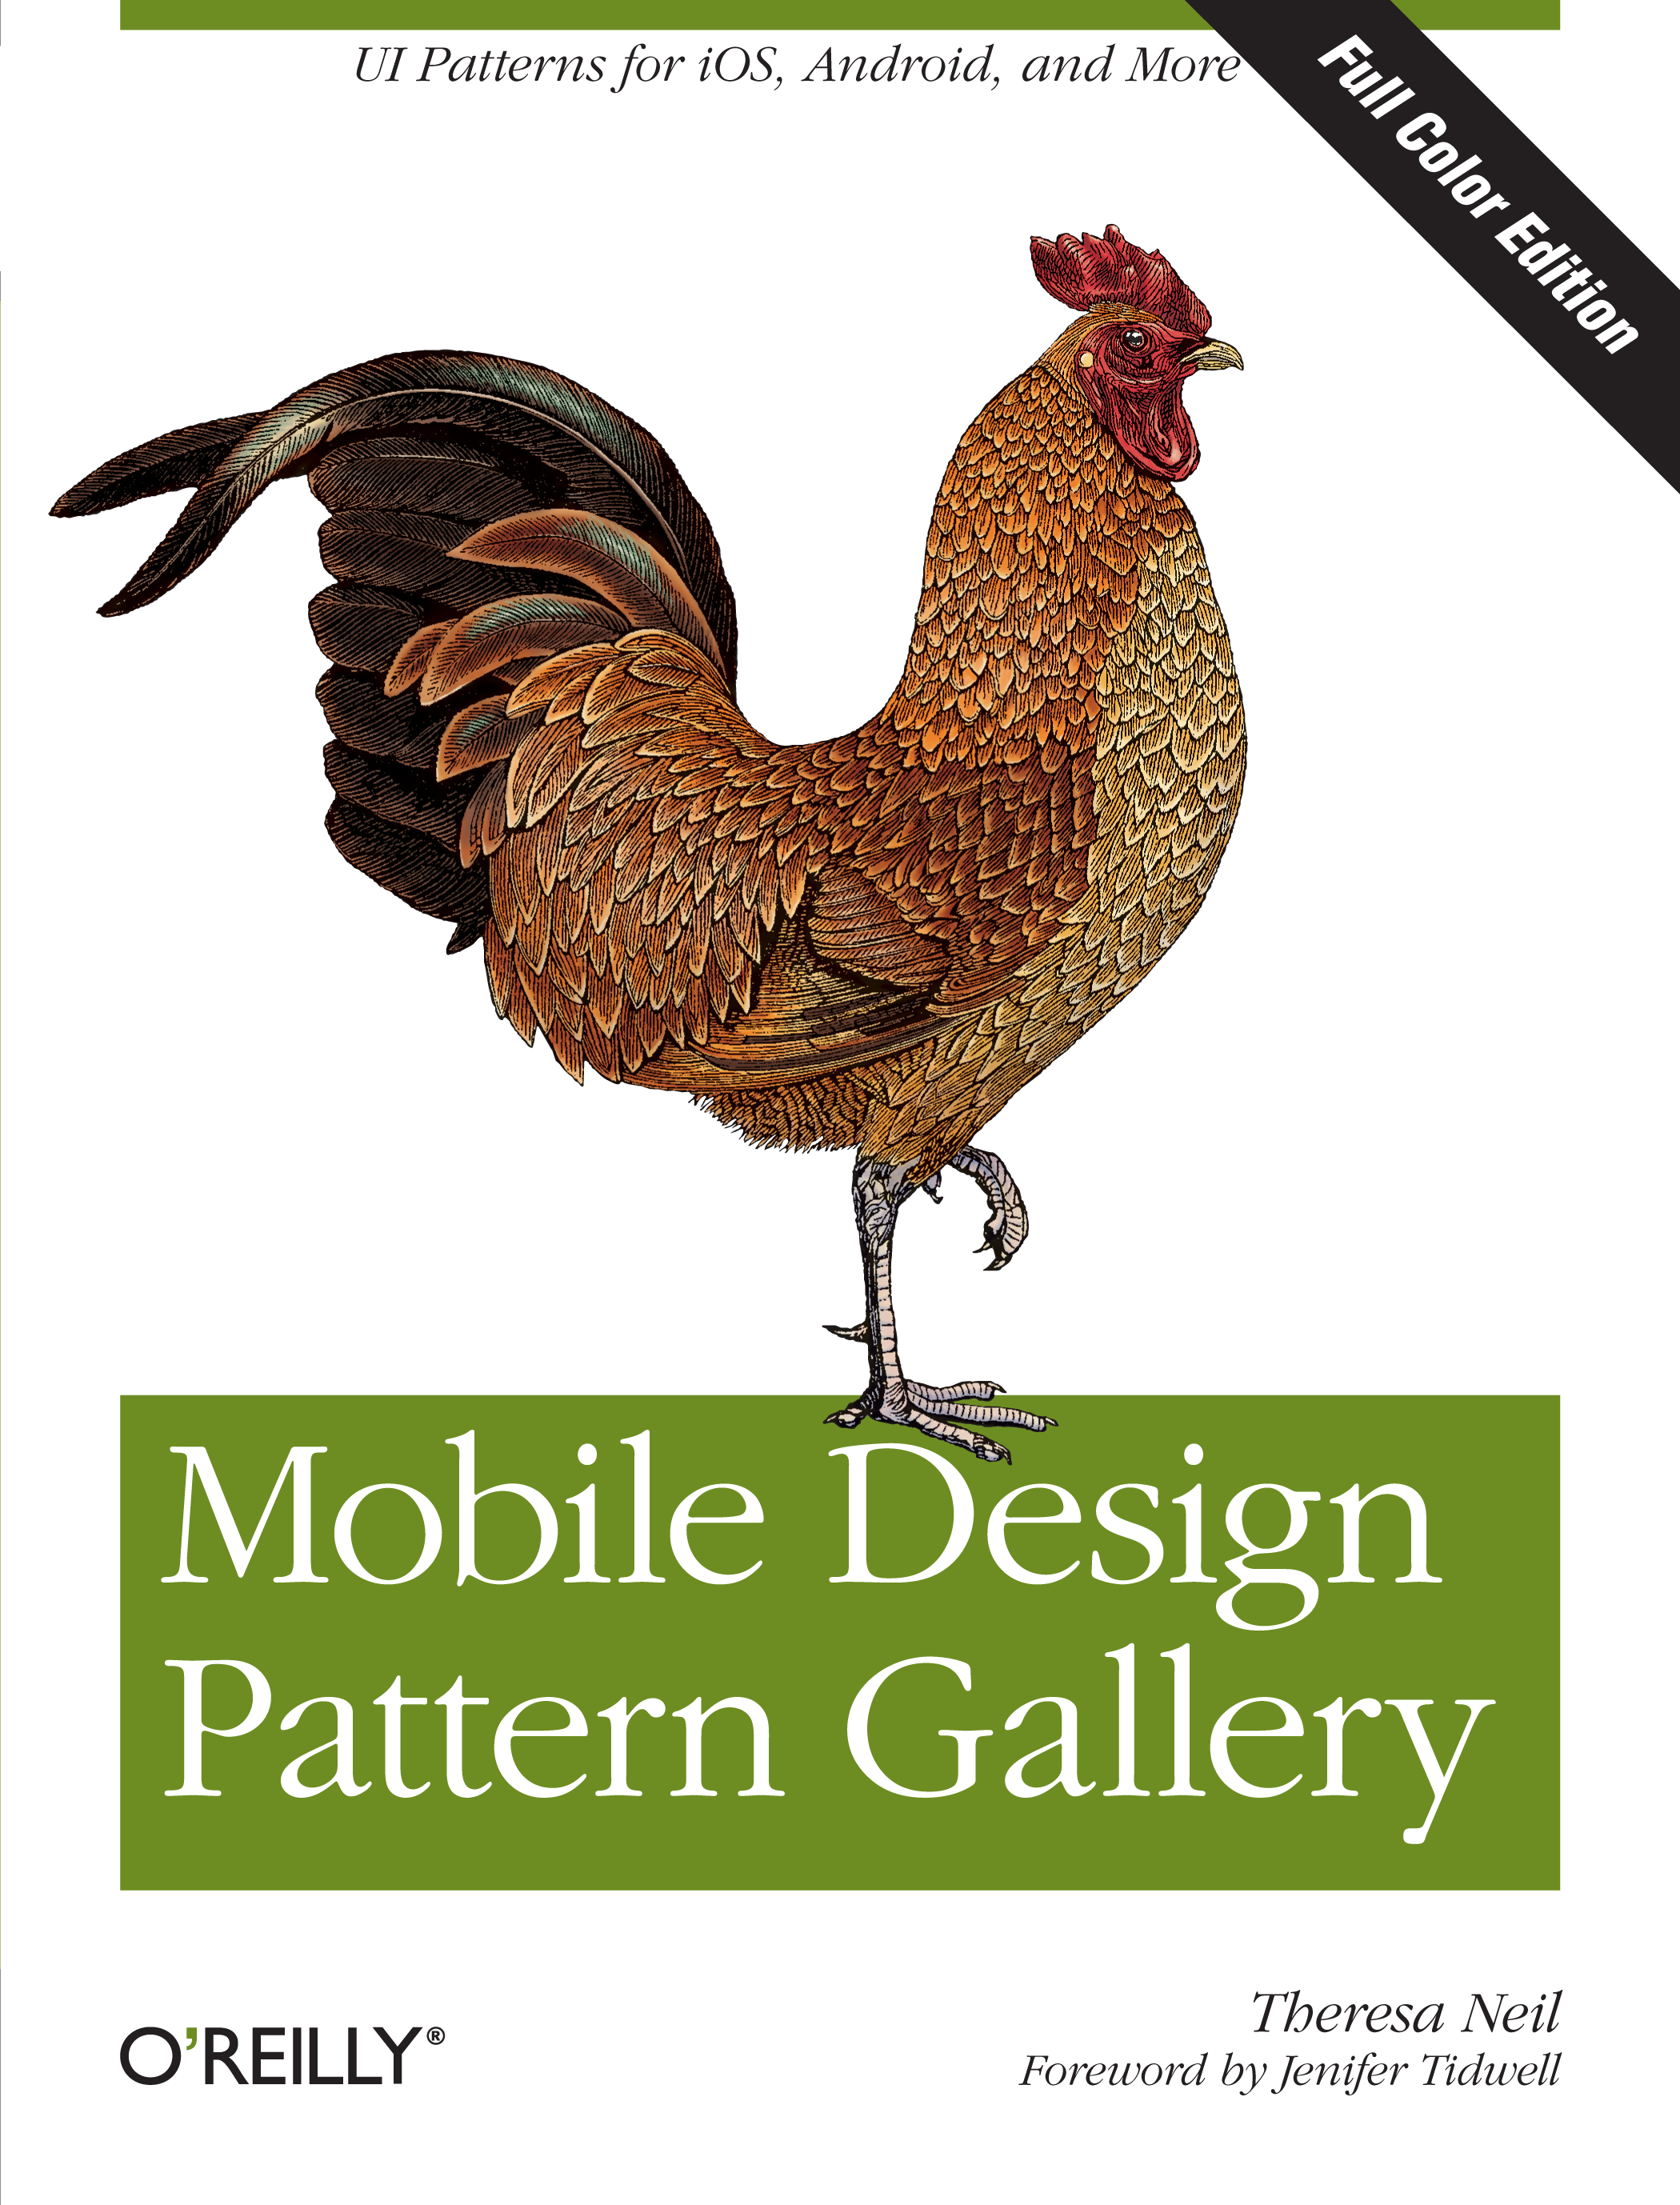 Oreilly Mobile Design Pattern Gallery